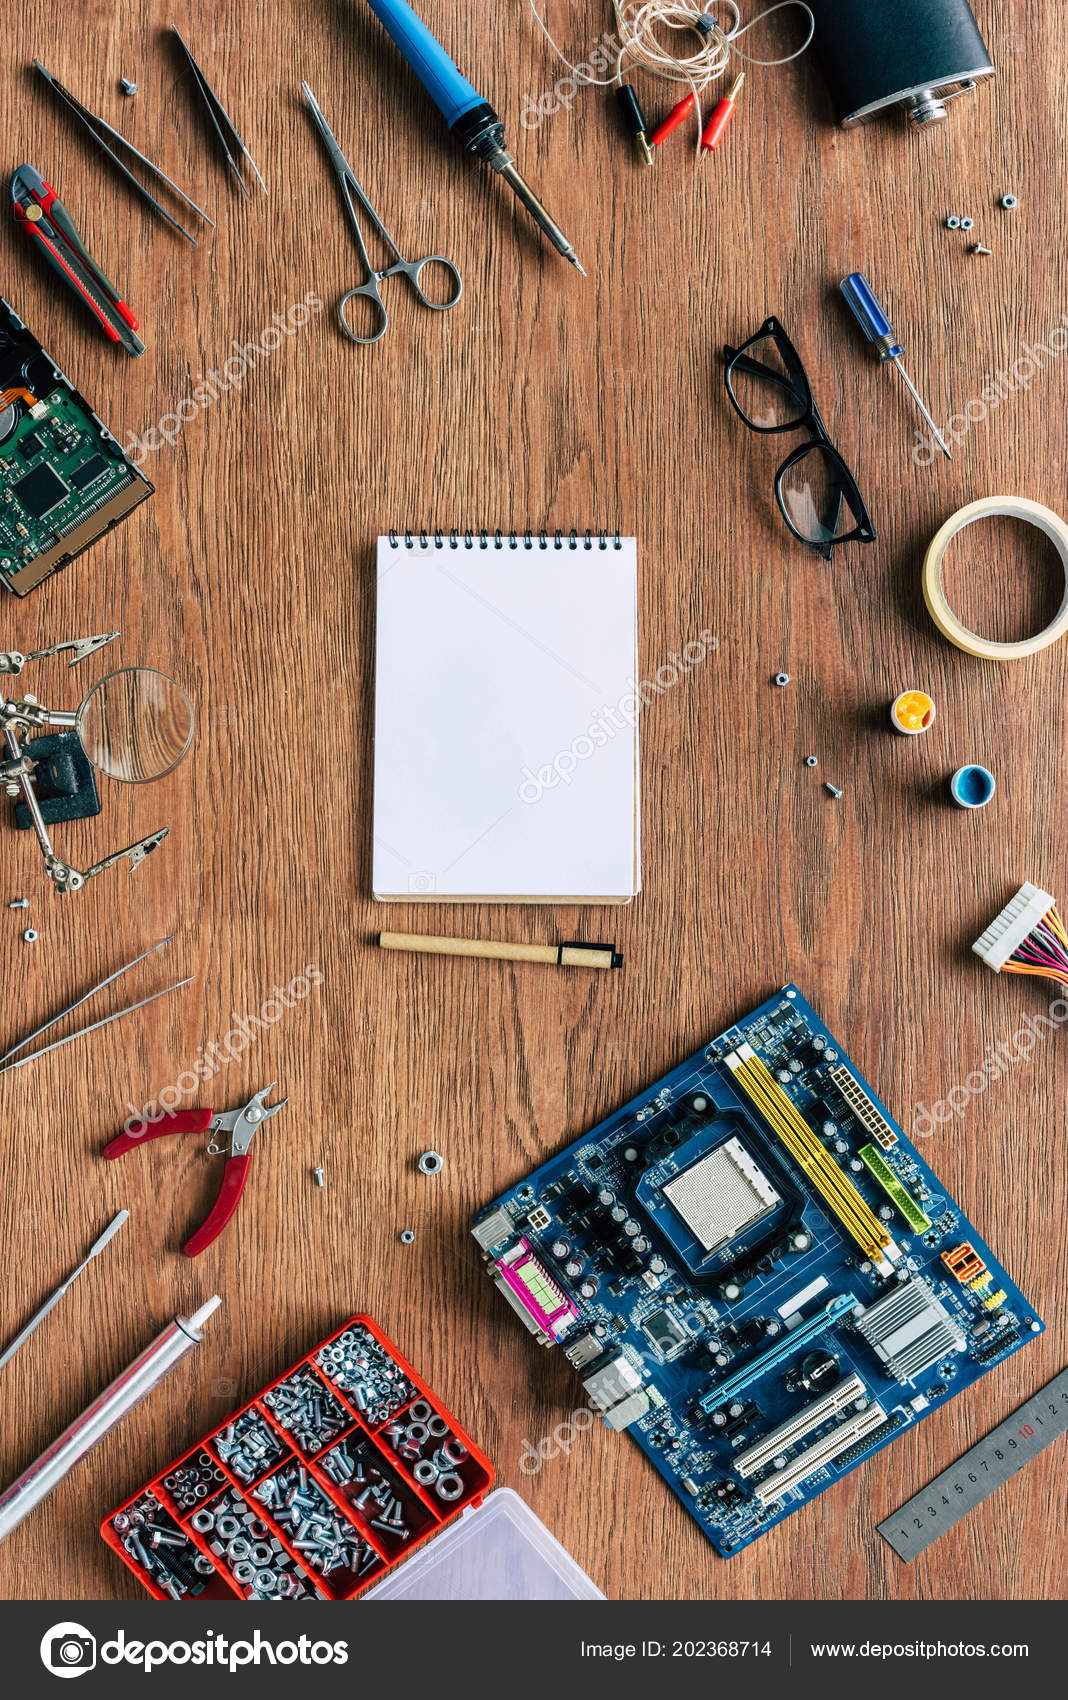 Top View Empty Textbook Pen Repairing Tools Motherboard Wooden Table Electronic Circuits Stock Photo